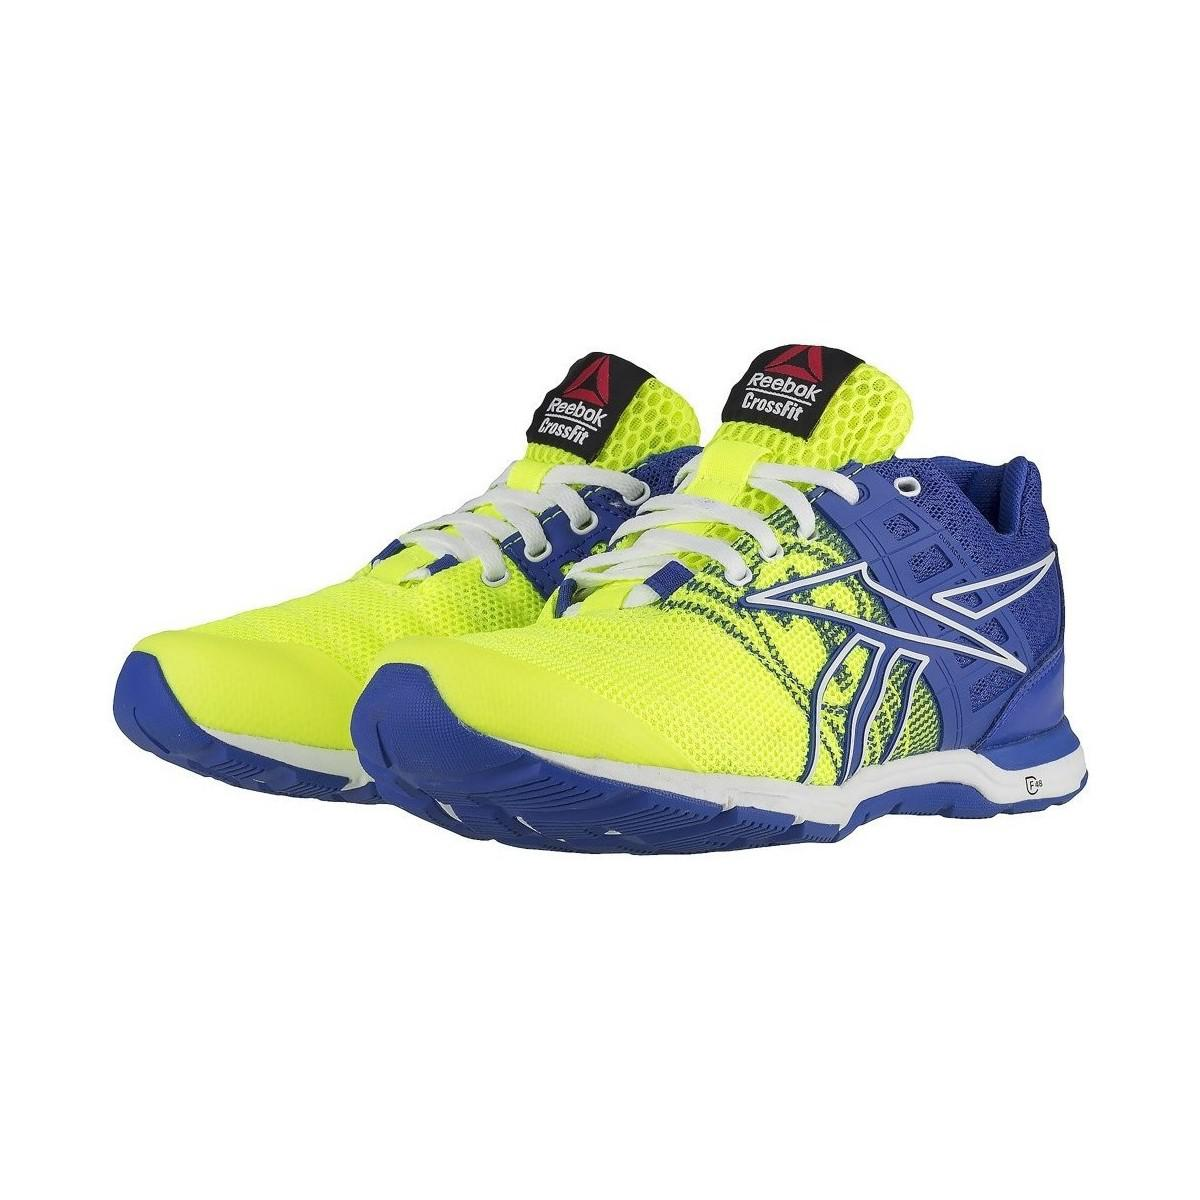 Reebok R Crossfit Nano 50 Lilacblackorchidf women's Shoes (Trainers) in Clearance Cheap Online Clearance Manchester Great Sale 9N2TtSMNU